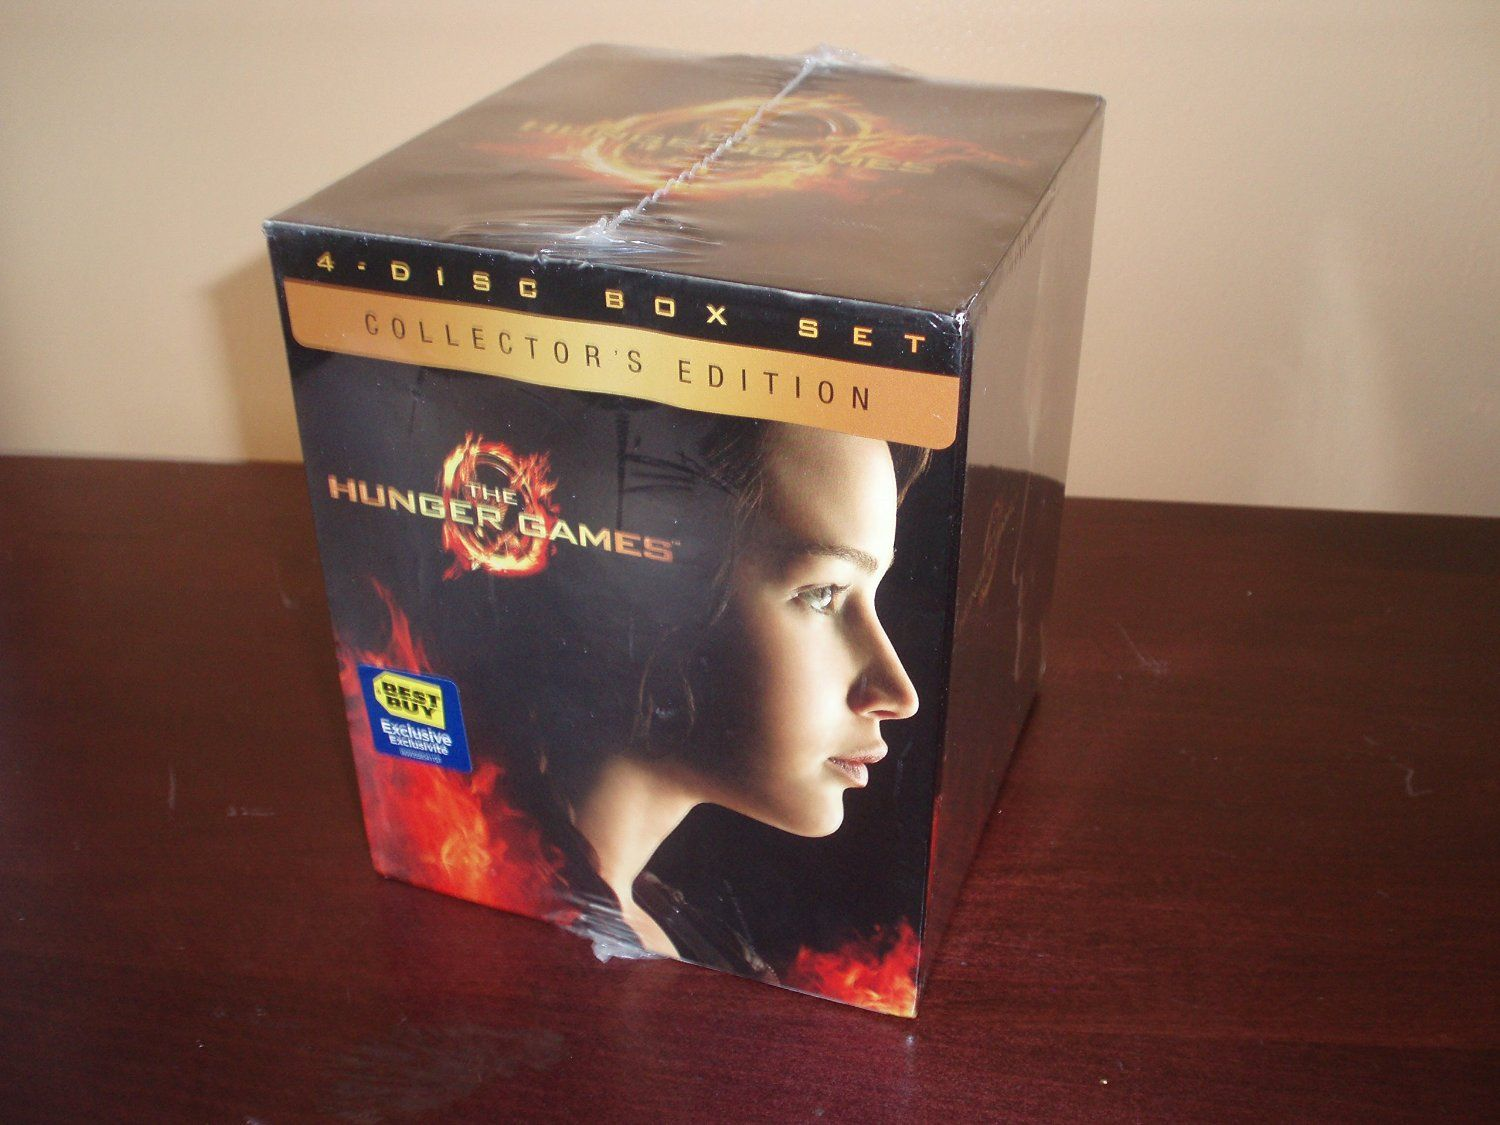 Amazon.com: The Hunger Games Collector's Edition 4-Disc Box Set: Movies & TV